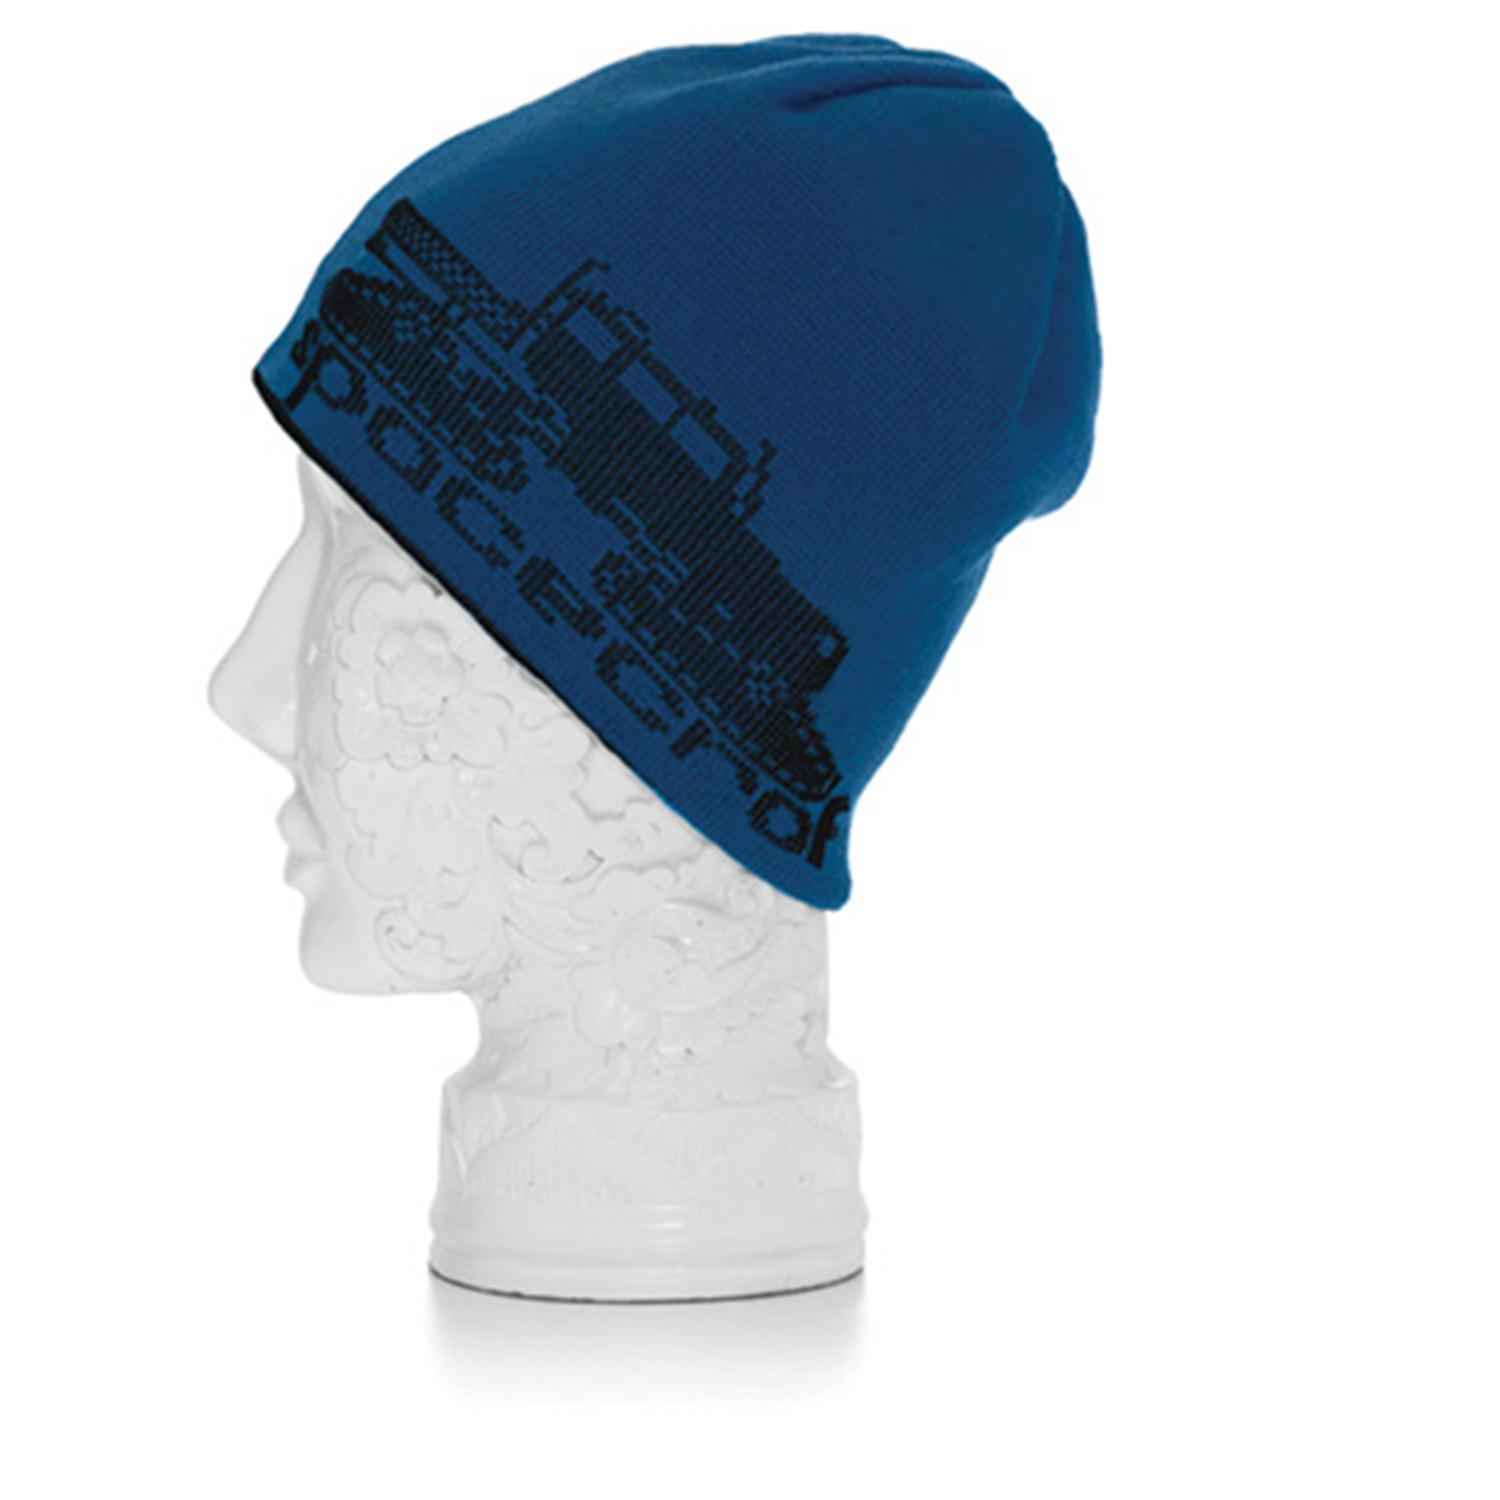 nasa snowboarding beanie - photo #13